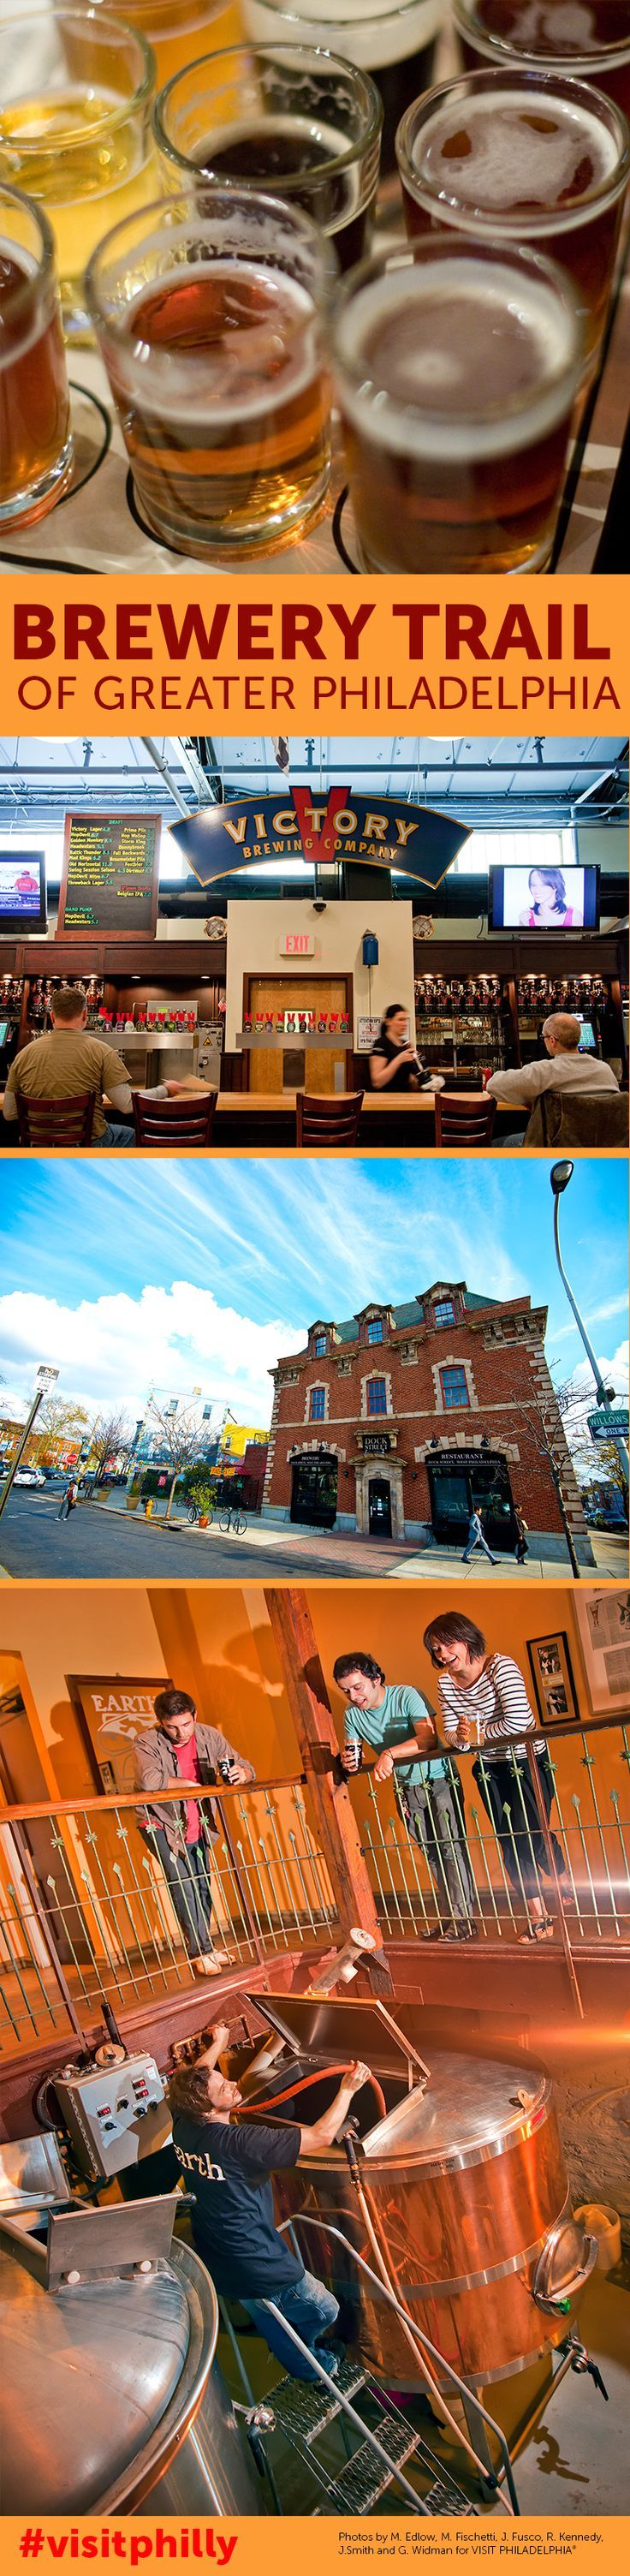 See why the Philadelphia region is one of the best places for beer in the world.